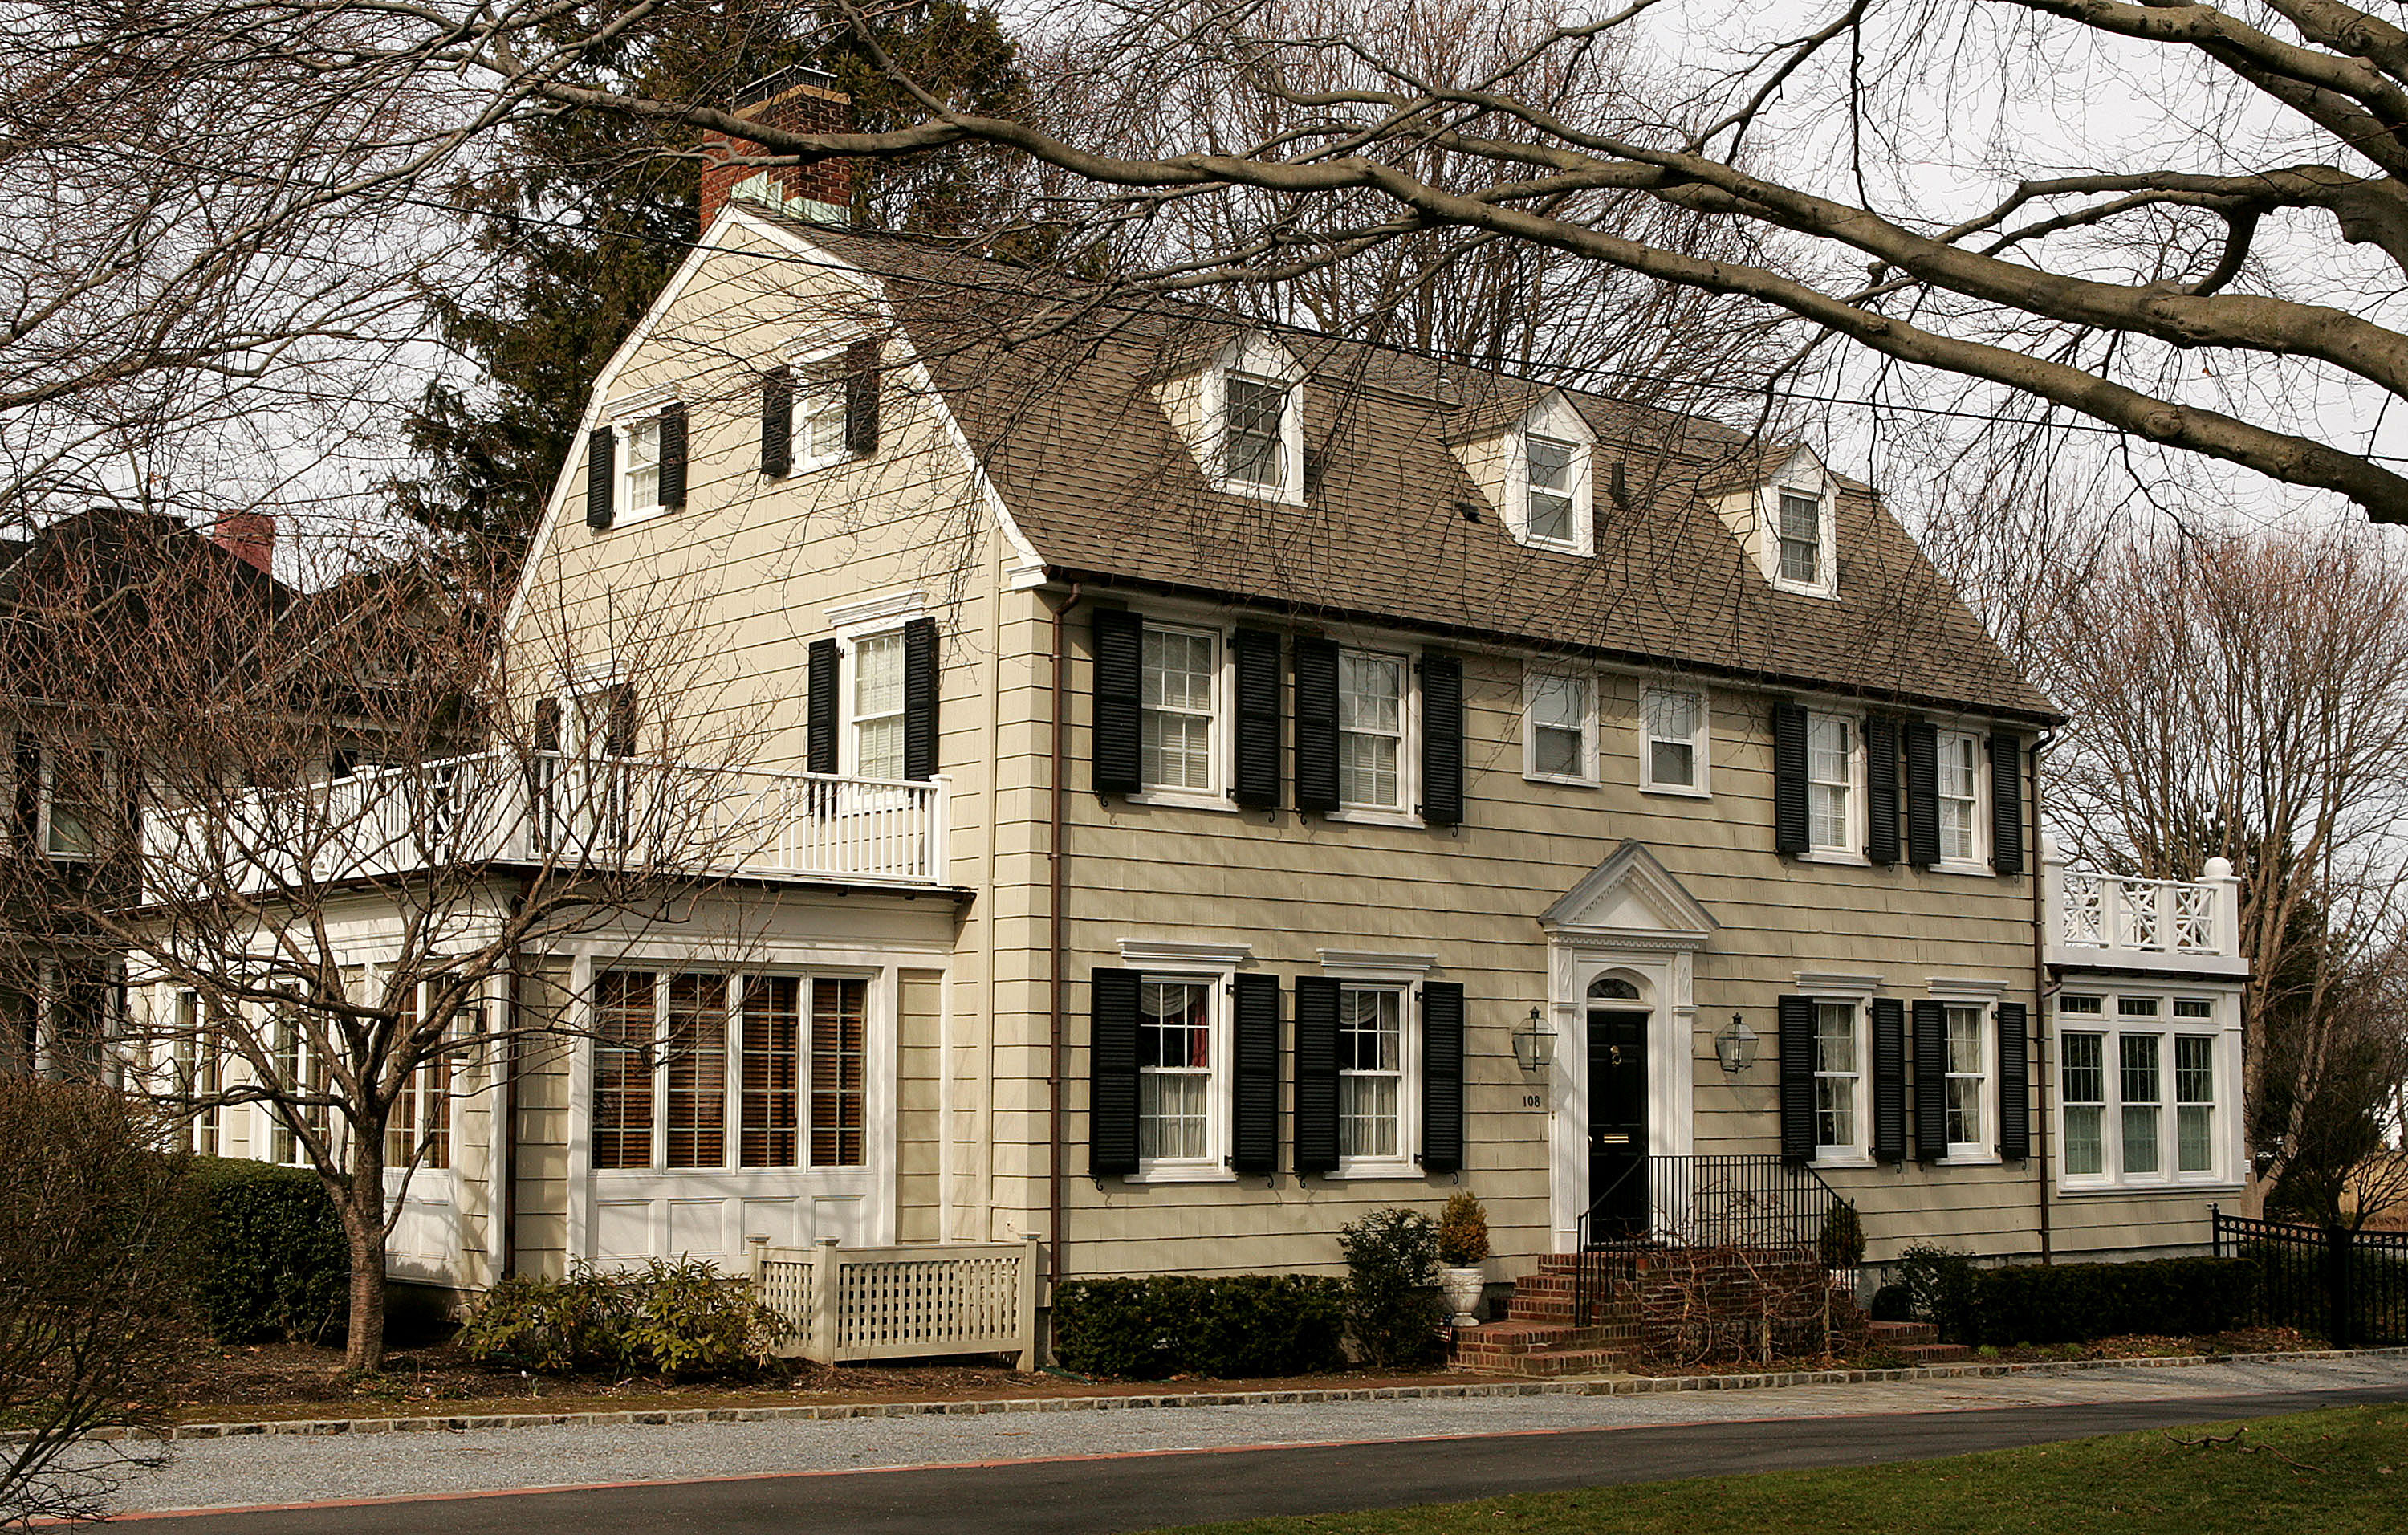 Real estate photograph of a house located at 112 Ocean Avenue in the town of Amityville, New York March 31, 2005.